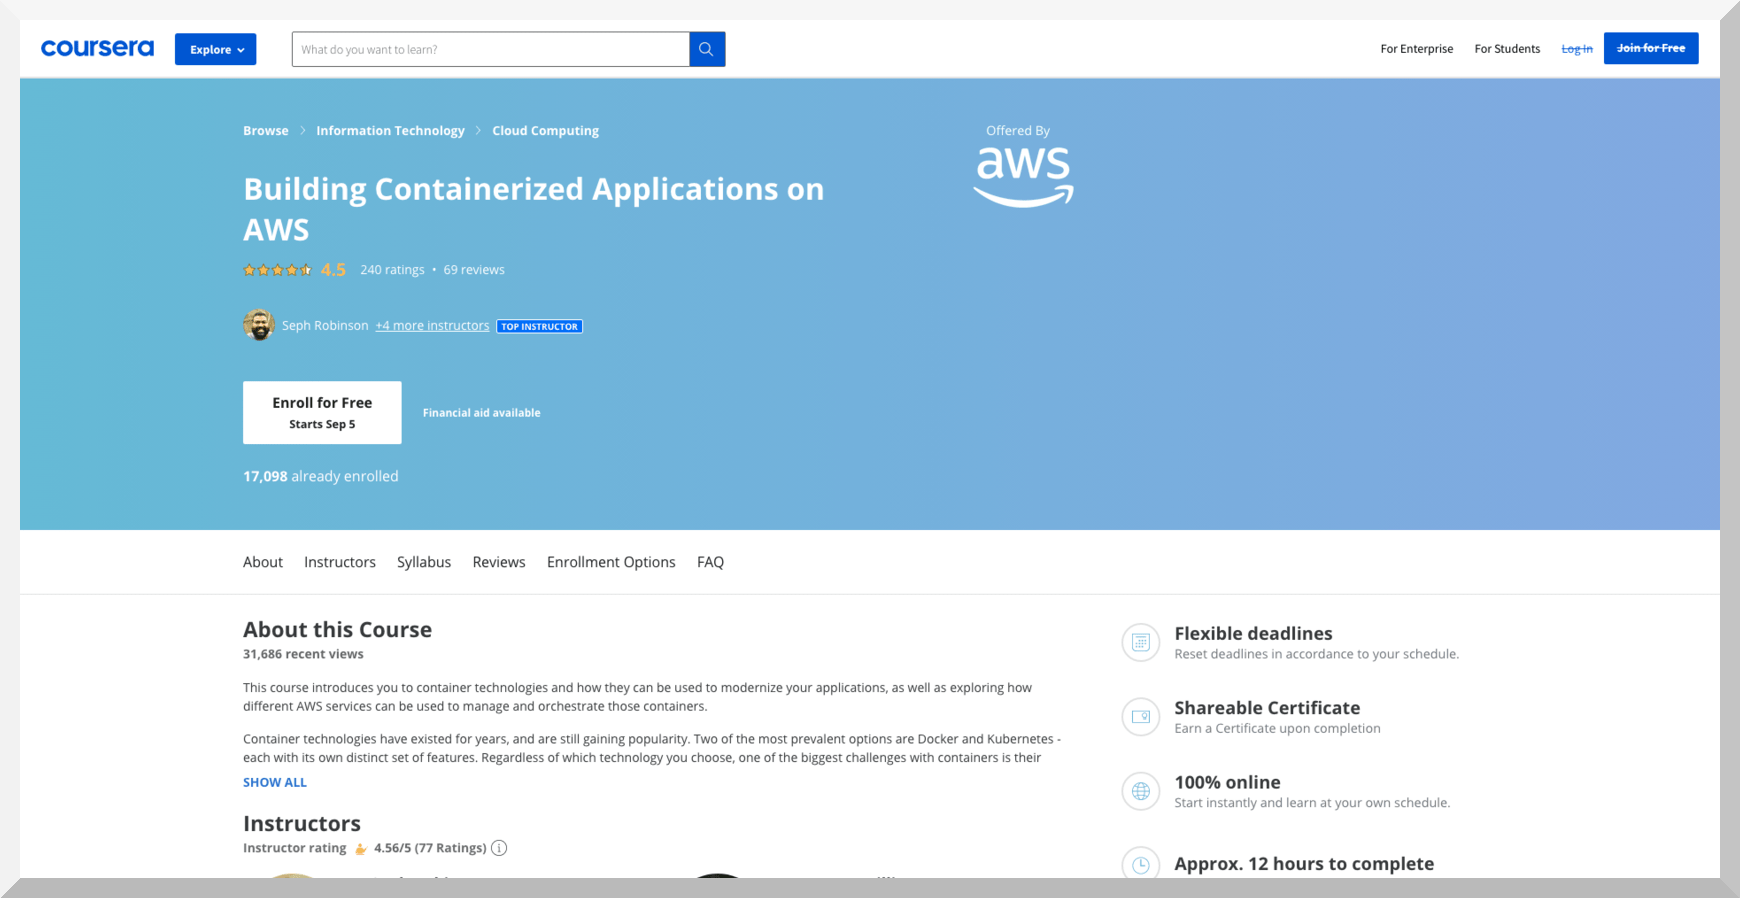 Building Containerized Applications on AWS – Coursera